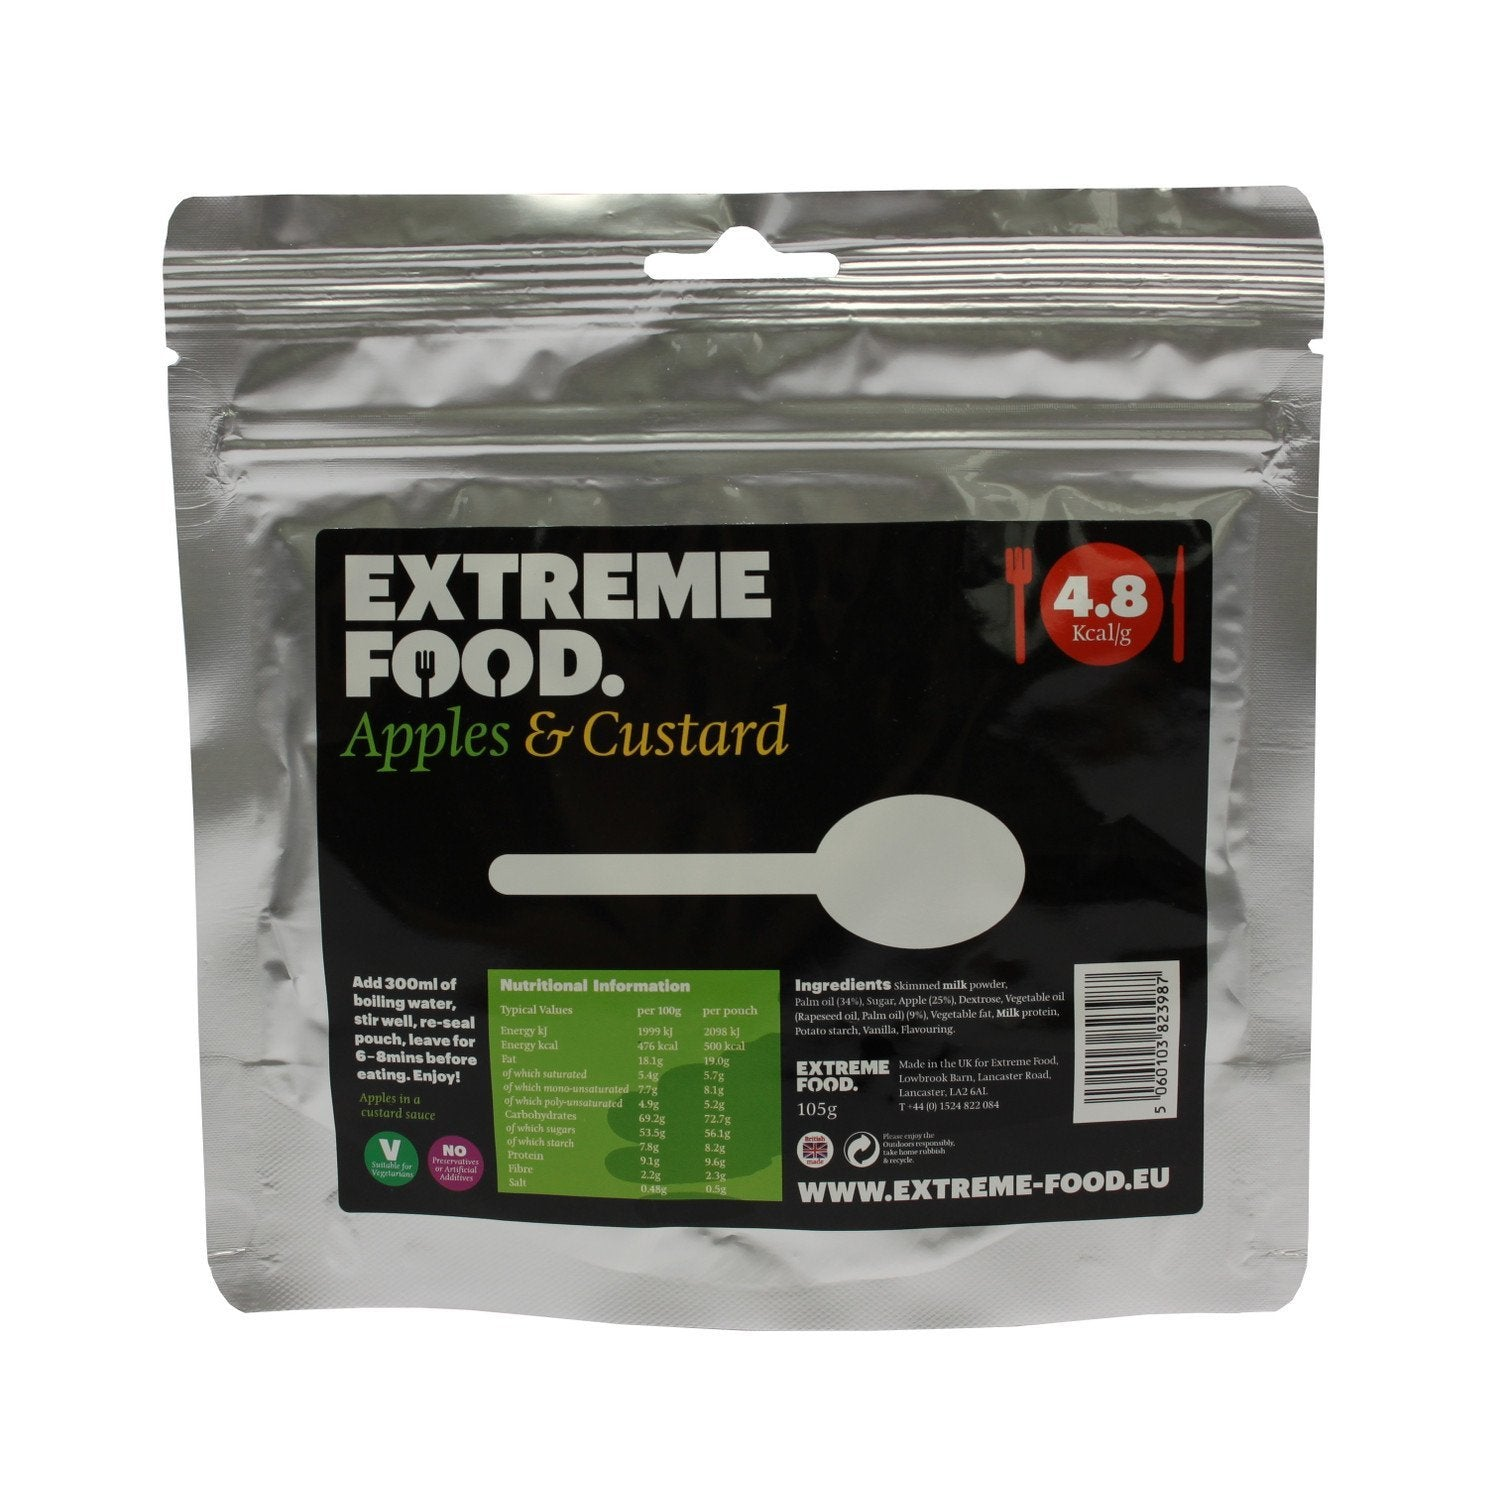 Extreme Food Apples & Custard, dried expedition food pack